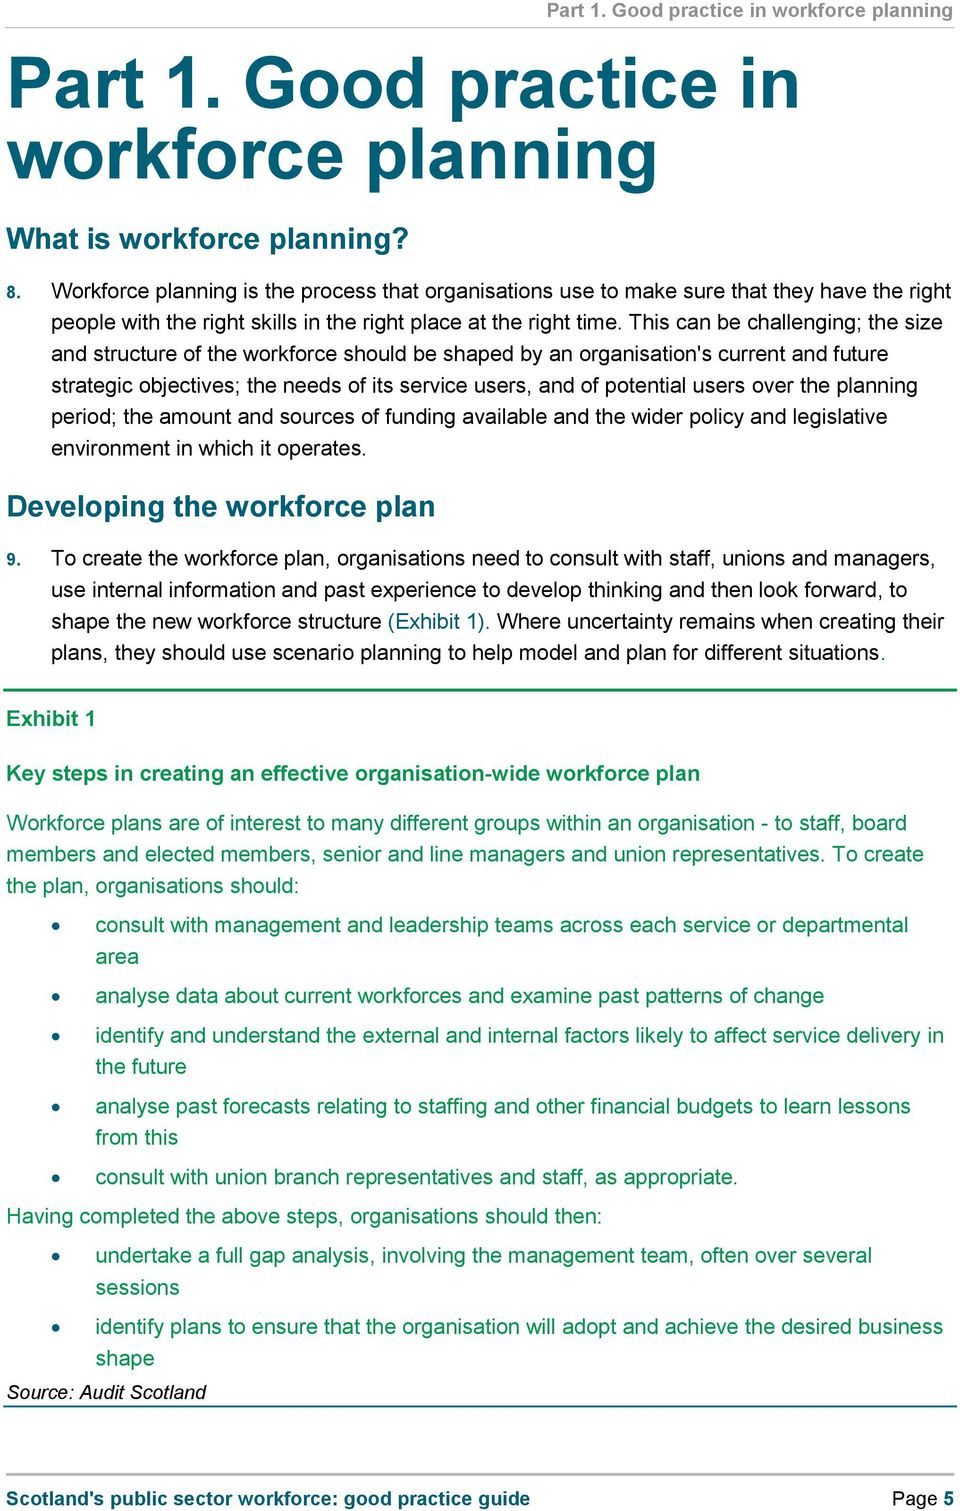 This can be challenging; the size and structure of the workforce should be shaped by an organisation's current and future strategic objectives; the needs of its service users, and of potential users